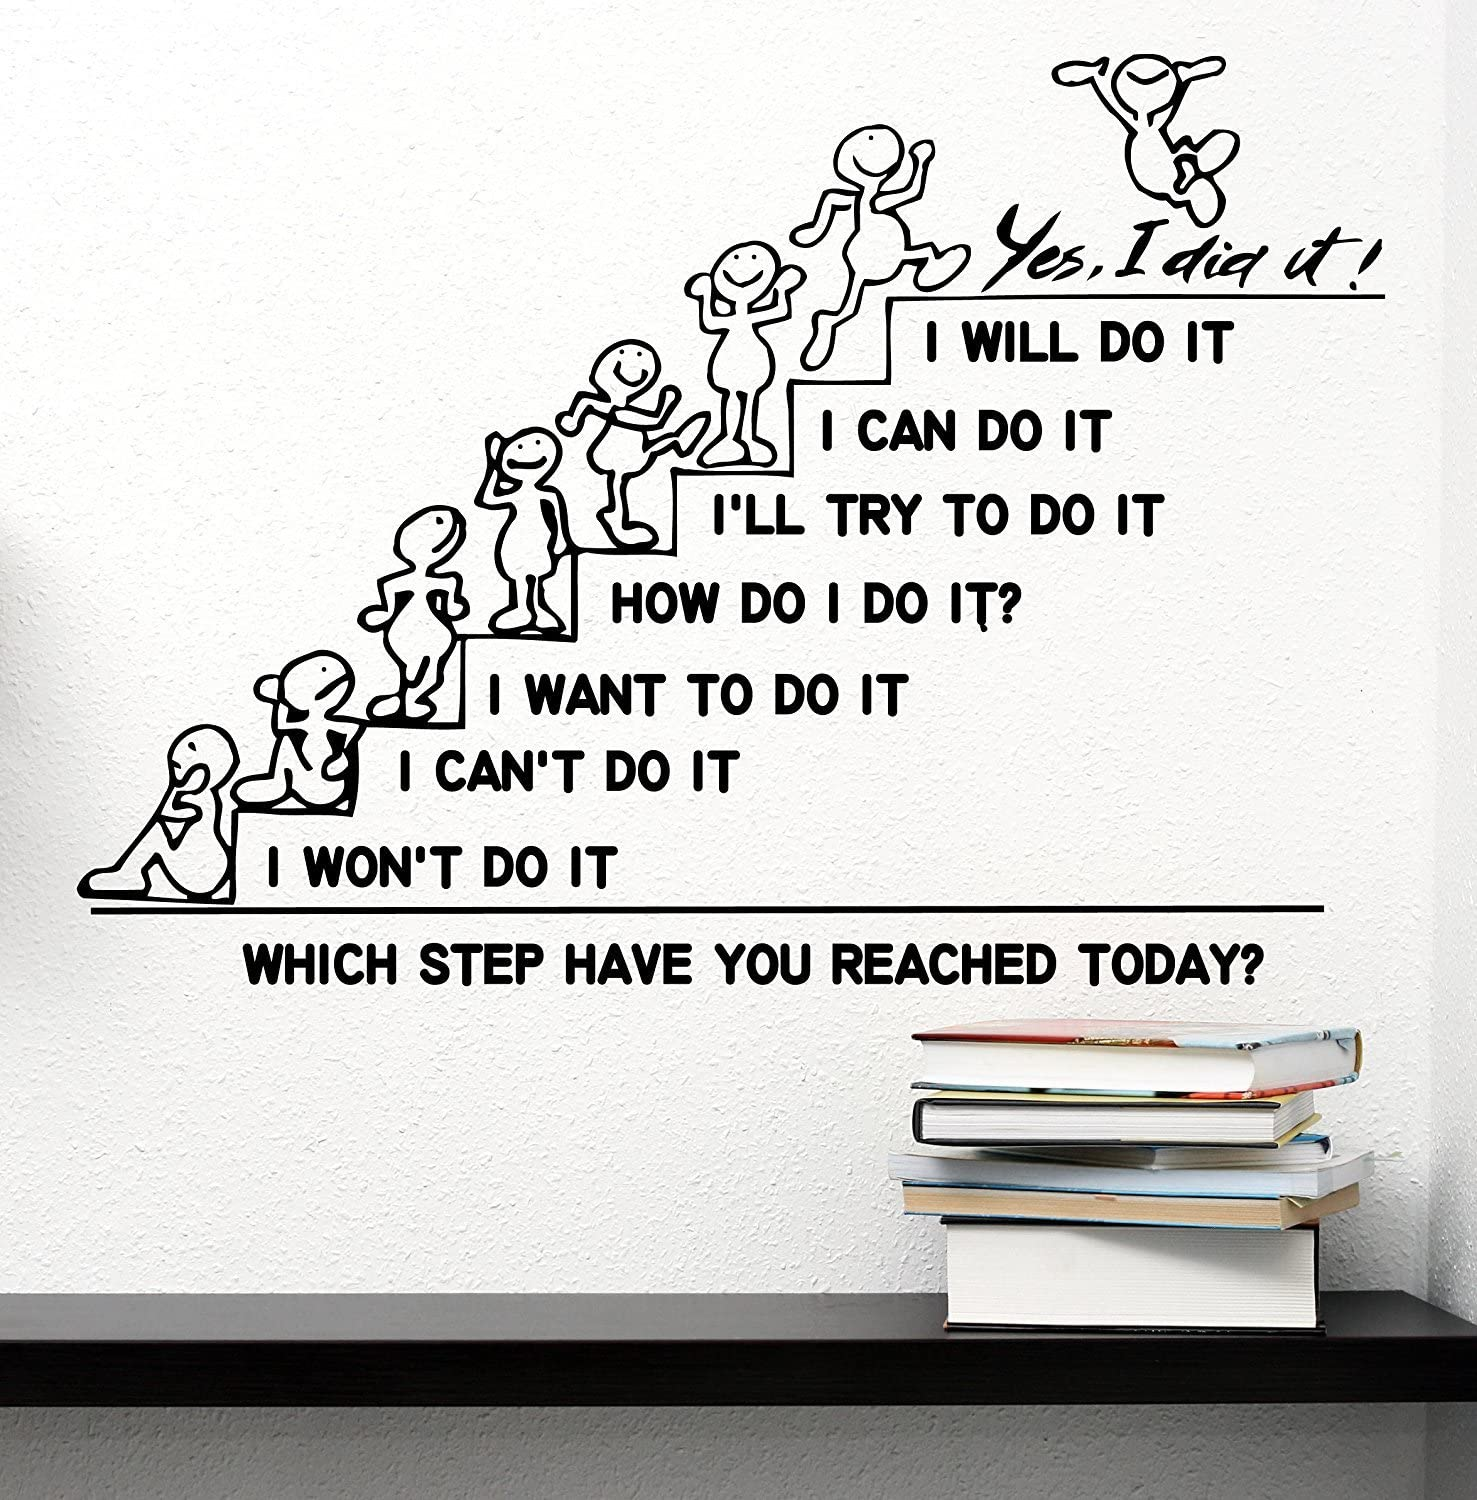 Office Wall Decals Stickers Office Quotes Wall Decals Inspirational Decals for Office Wall Decals for Office Office Wall Decor Wall Decal for Office Wall Stickers for Office School Office Wall Decals